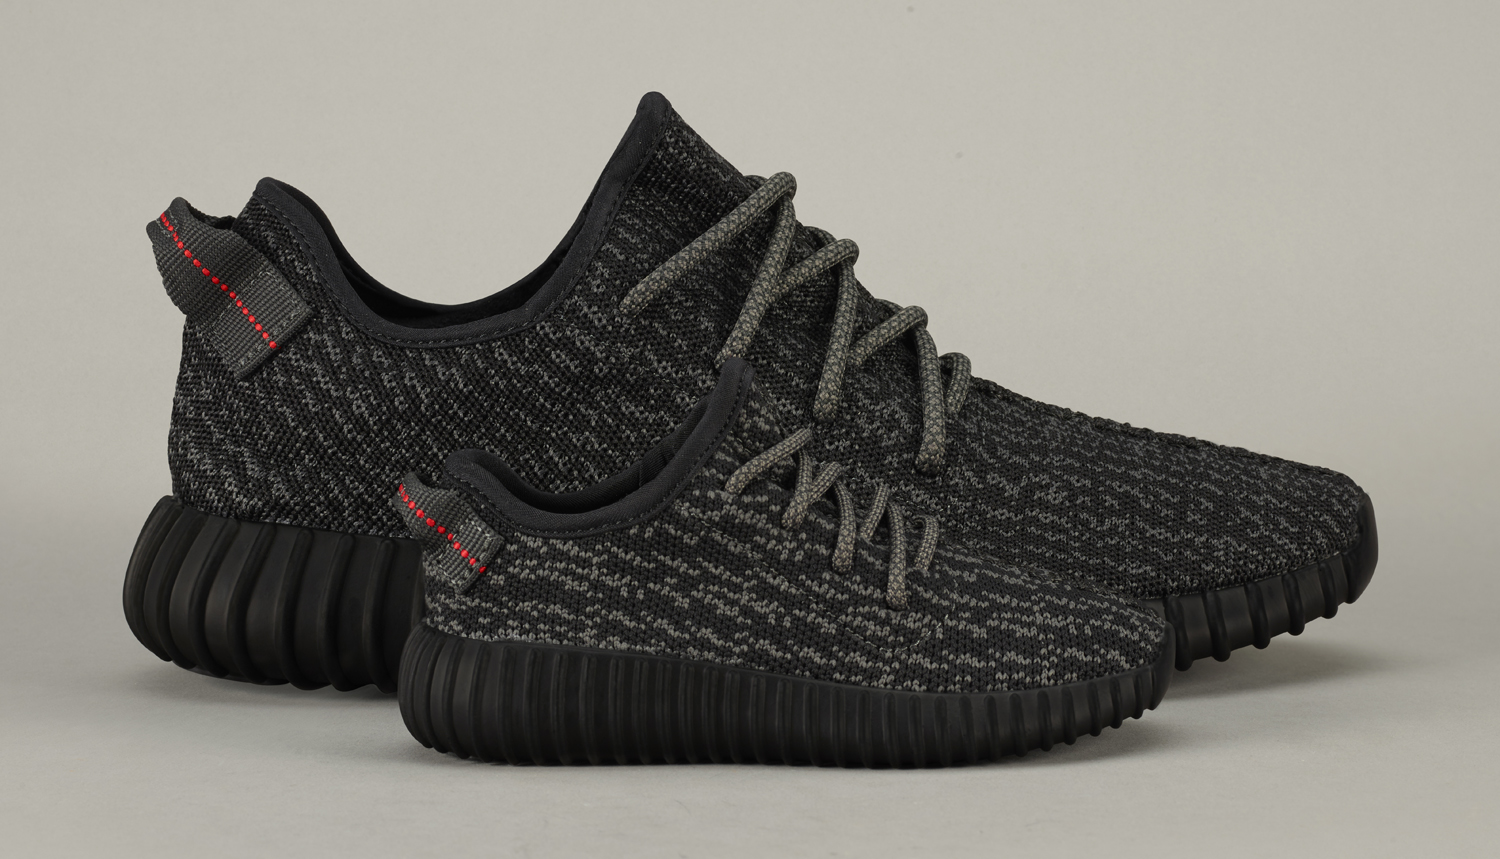 a0f133b908cec Infant Adidas Yeezy 350 Boost Price